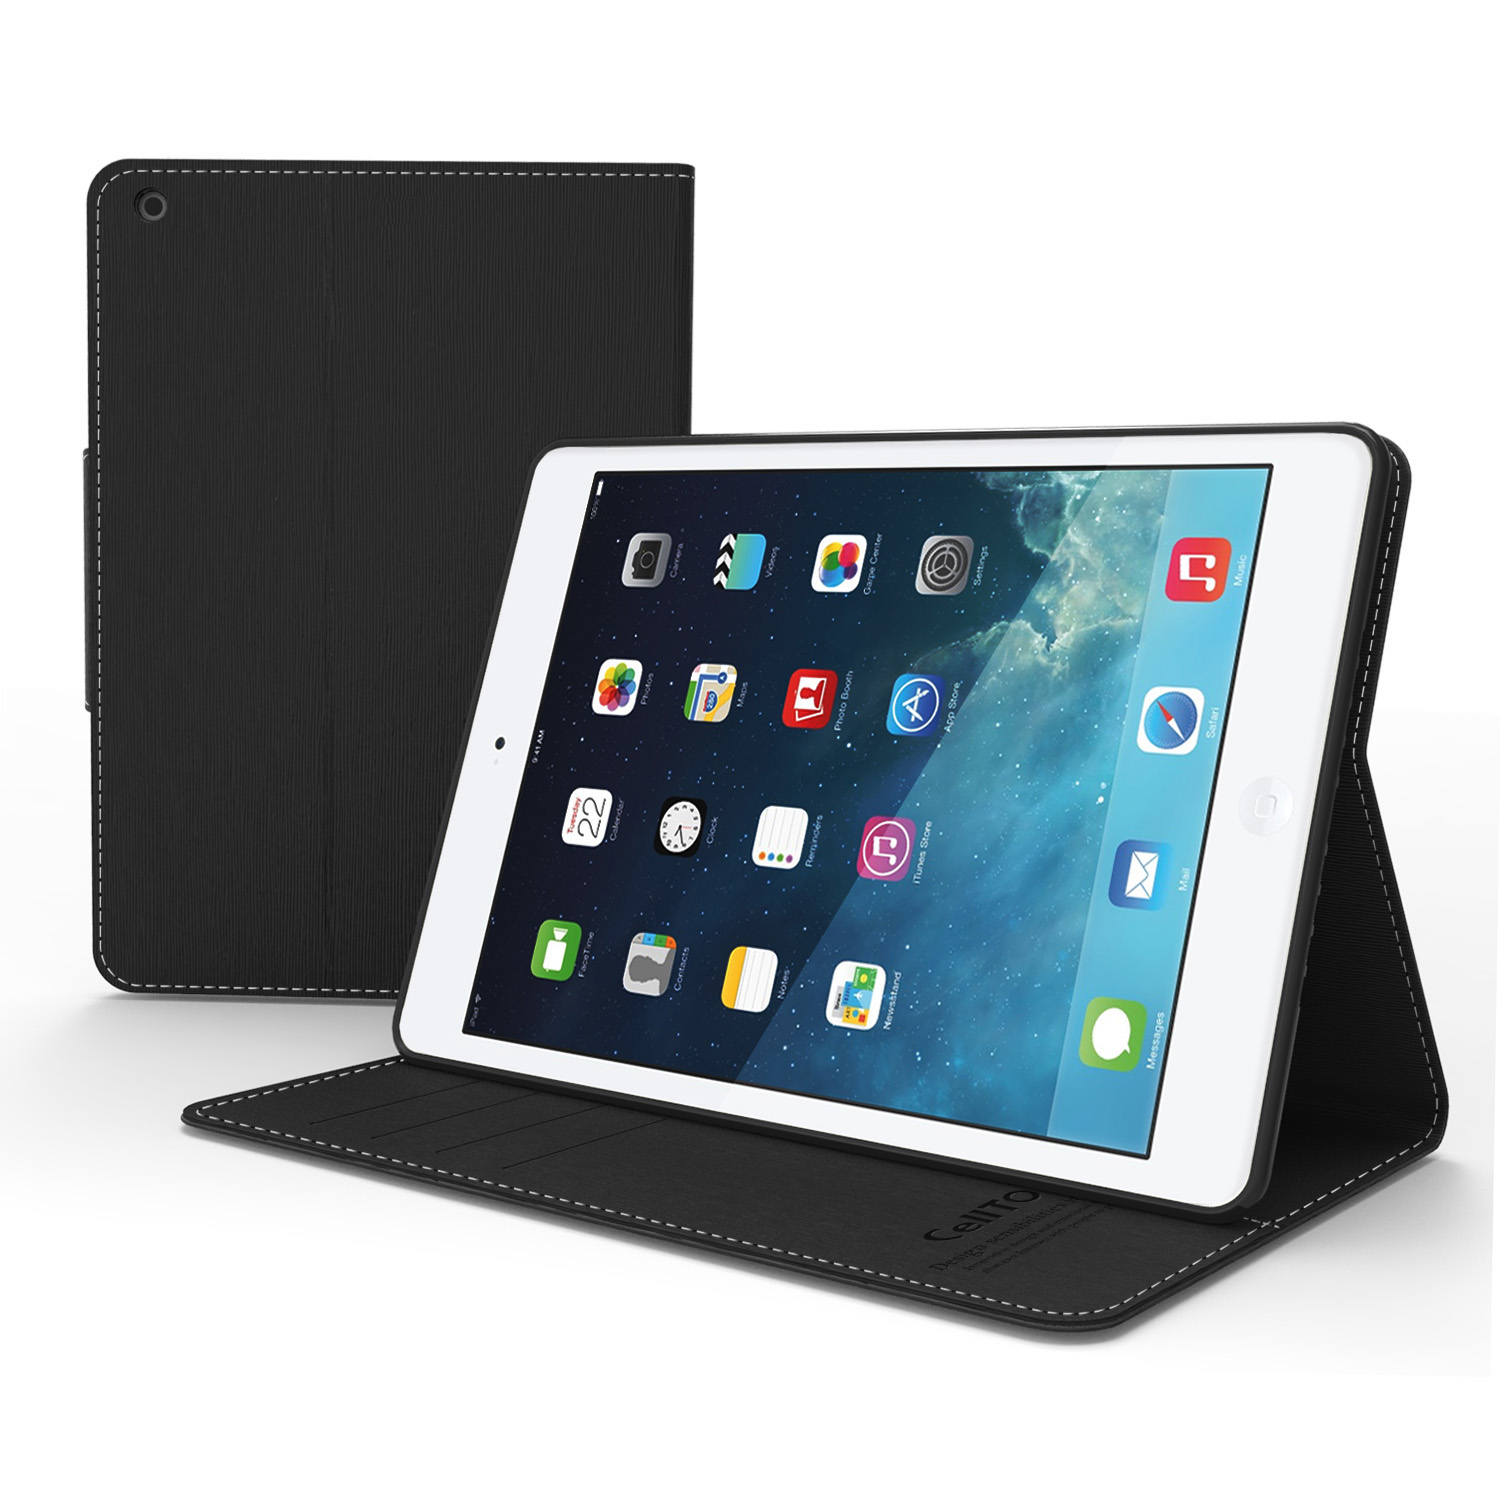 Apple iPad Mini Faux Leather Diary Flip Case w/ ID Slots, Bill Fold, Magnetic Closure for iPad Mini 1/2/3